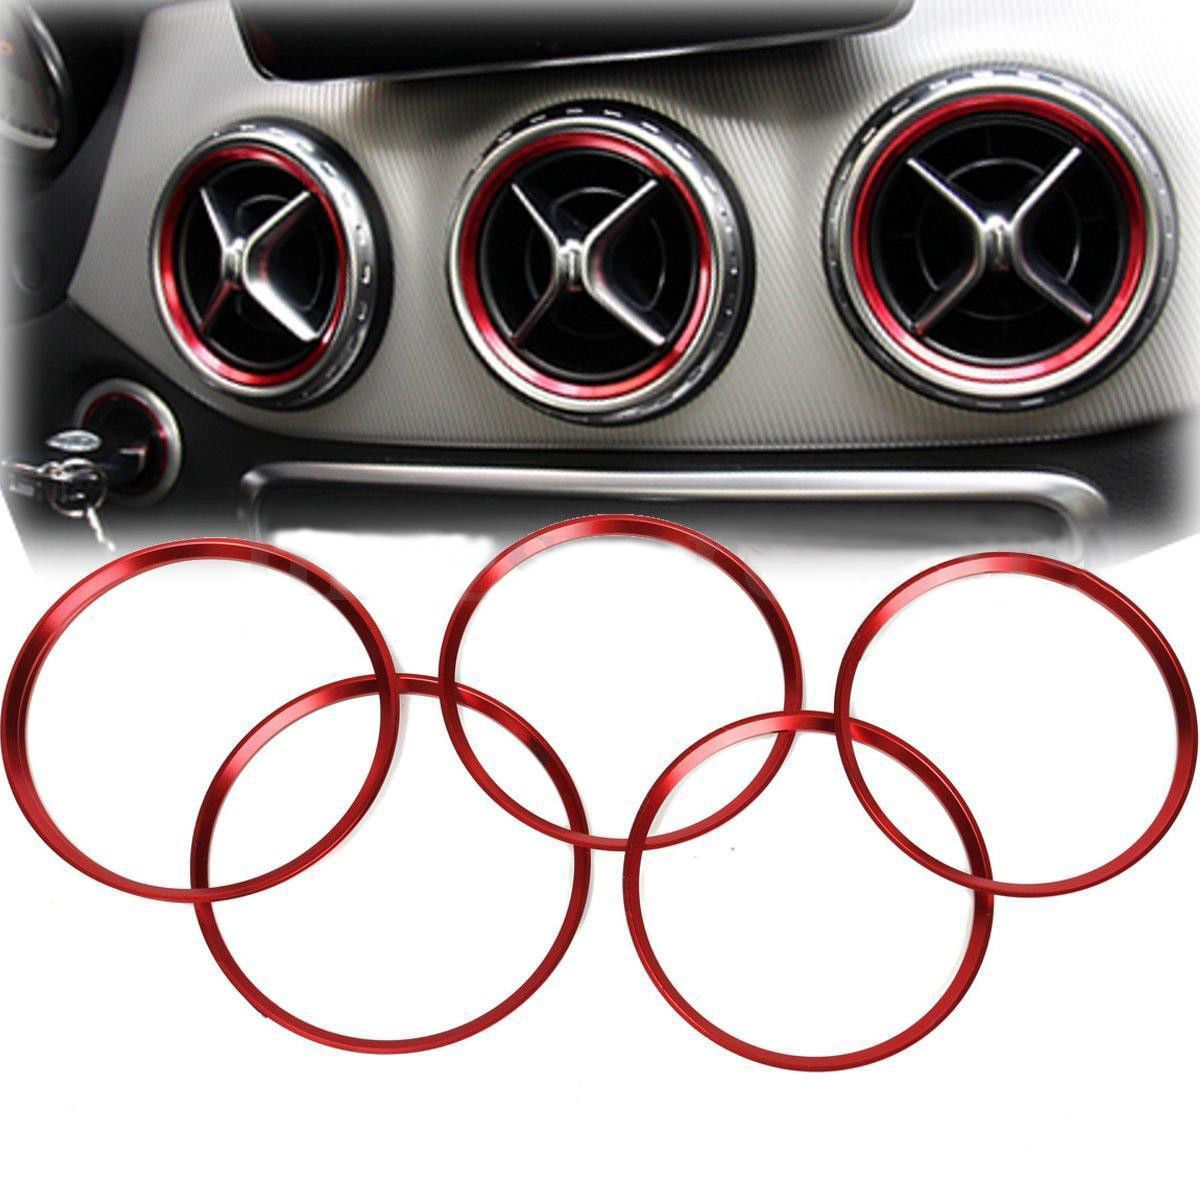 Red Air Ring Cover Trim Vent Outlet For Class 180 A//B//CLA//GLA Benz 200 220 5 Pcs